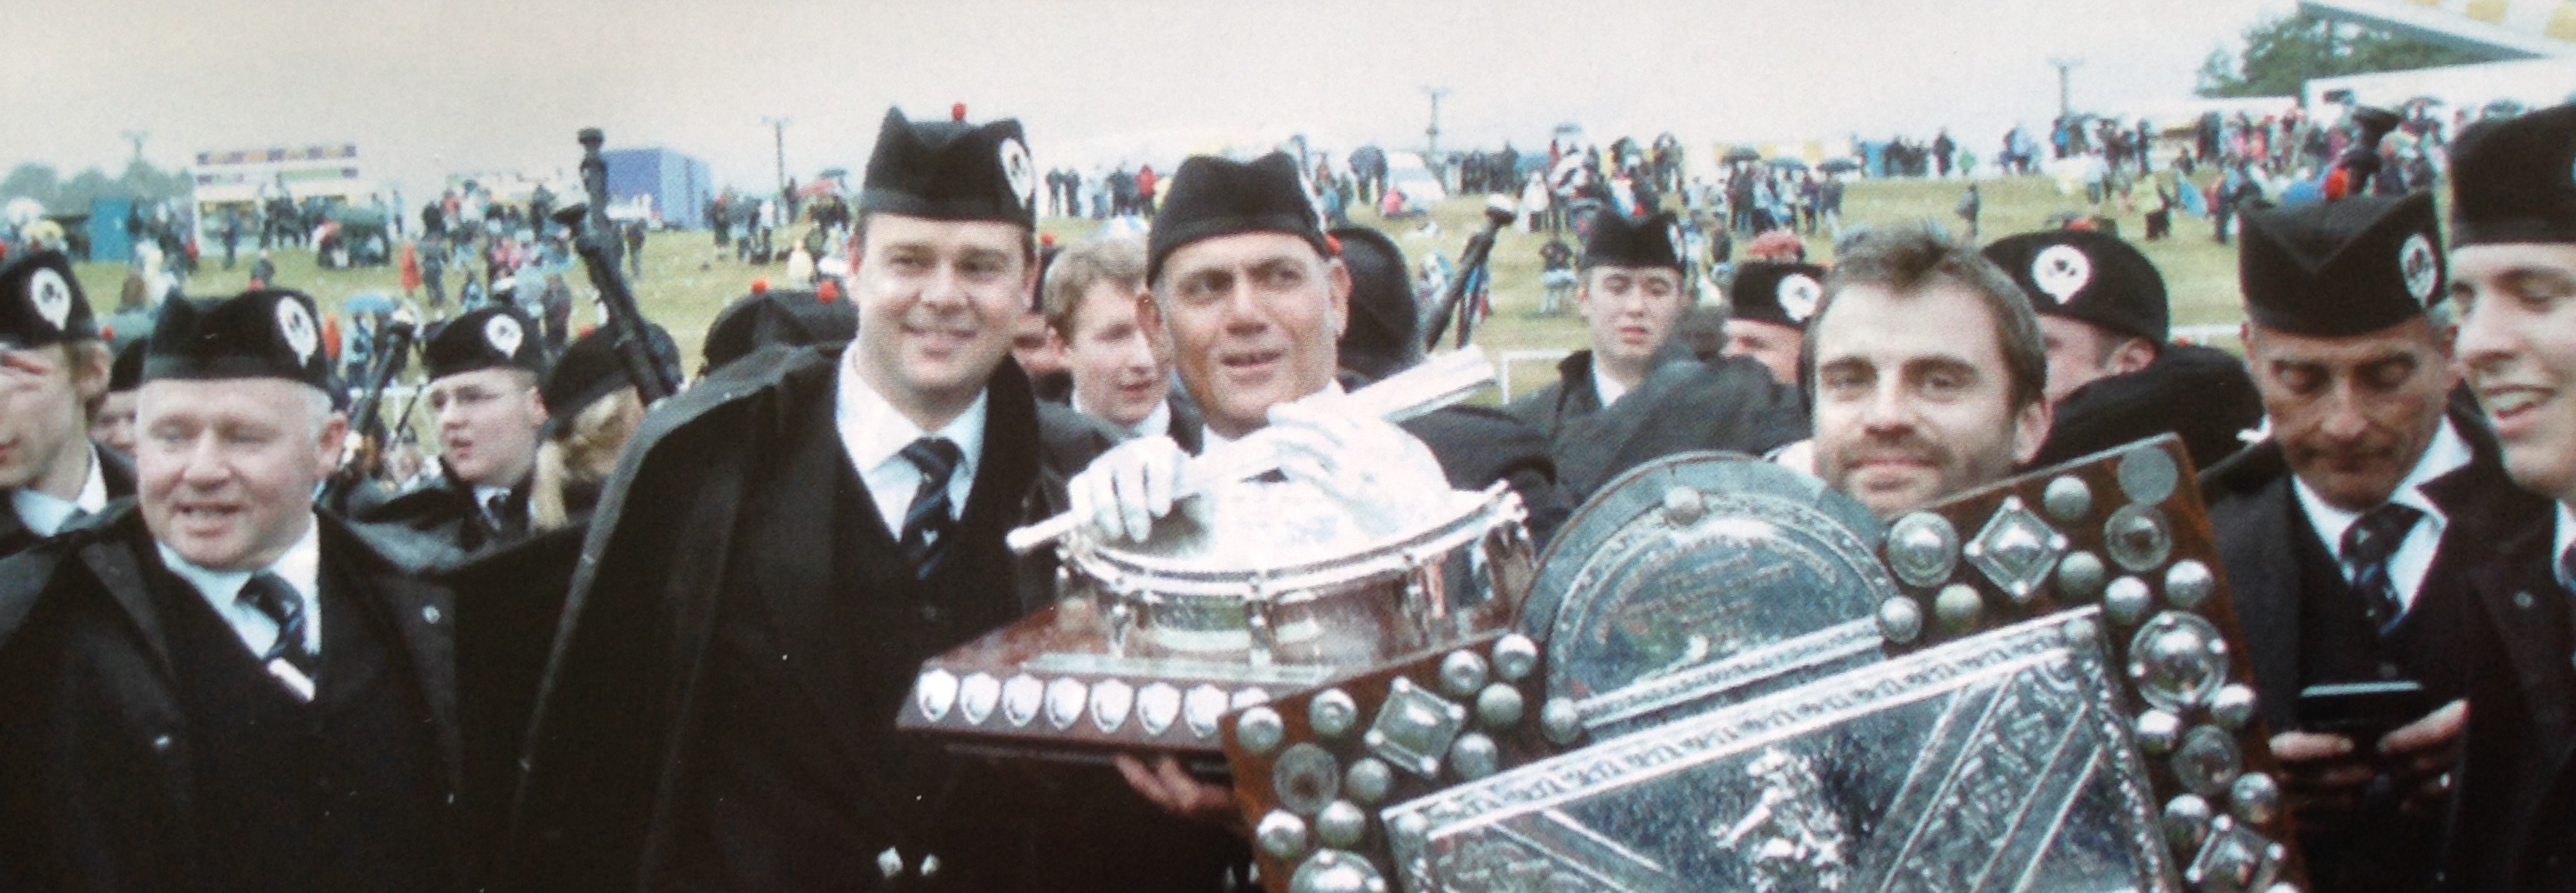 The Boggies celebrate their big win at Cowal in 2010